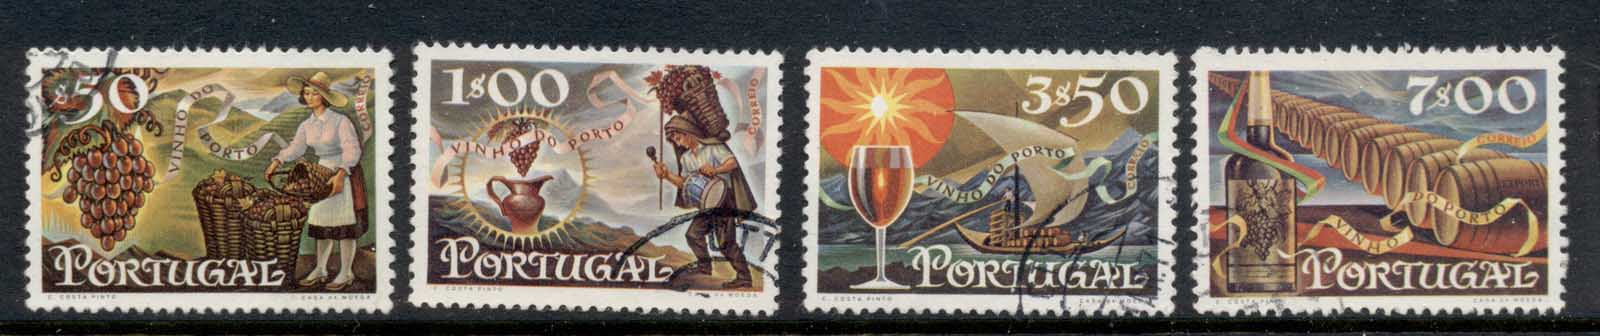 Portugal 1970 Wine Exports FU